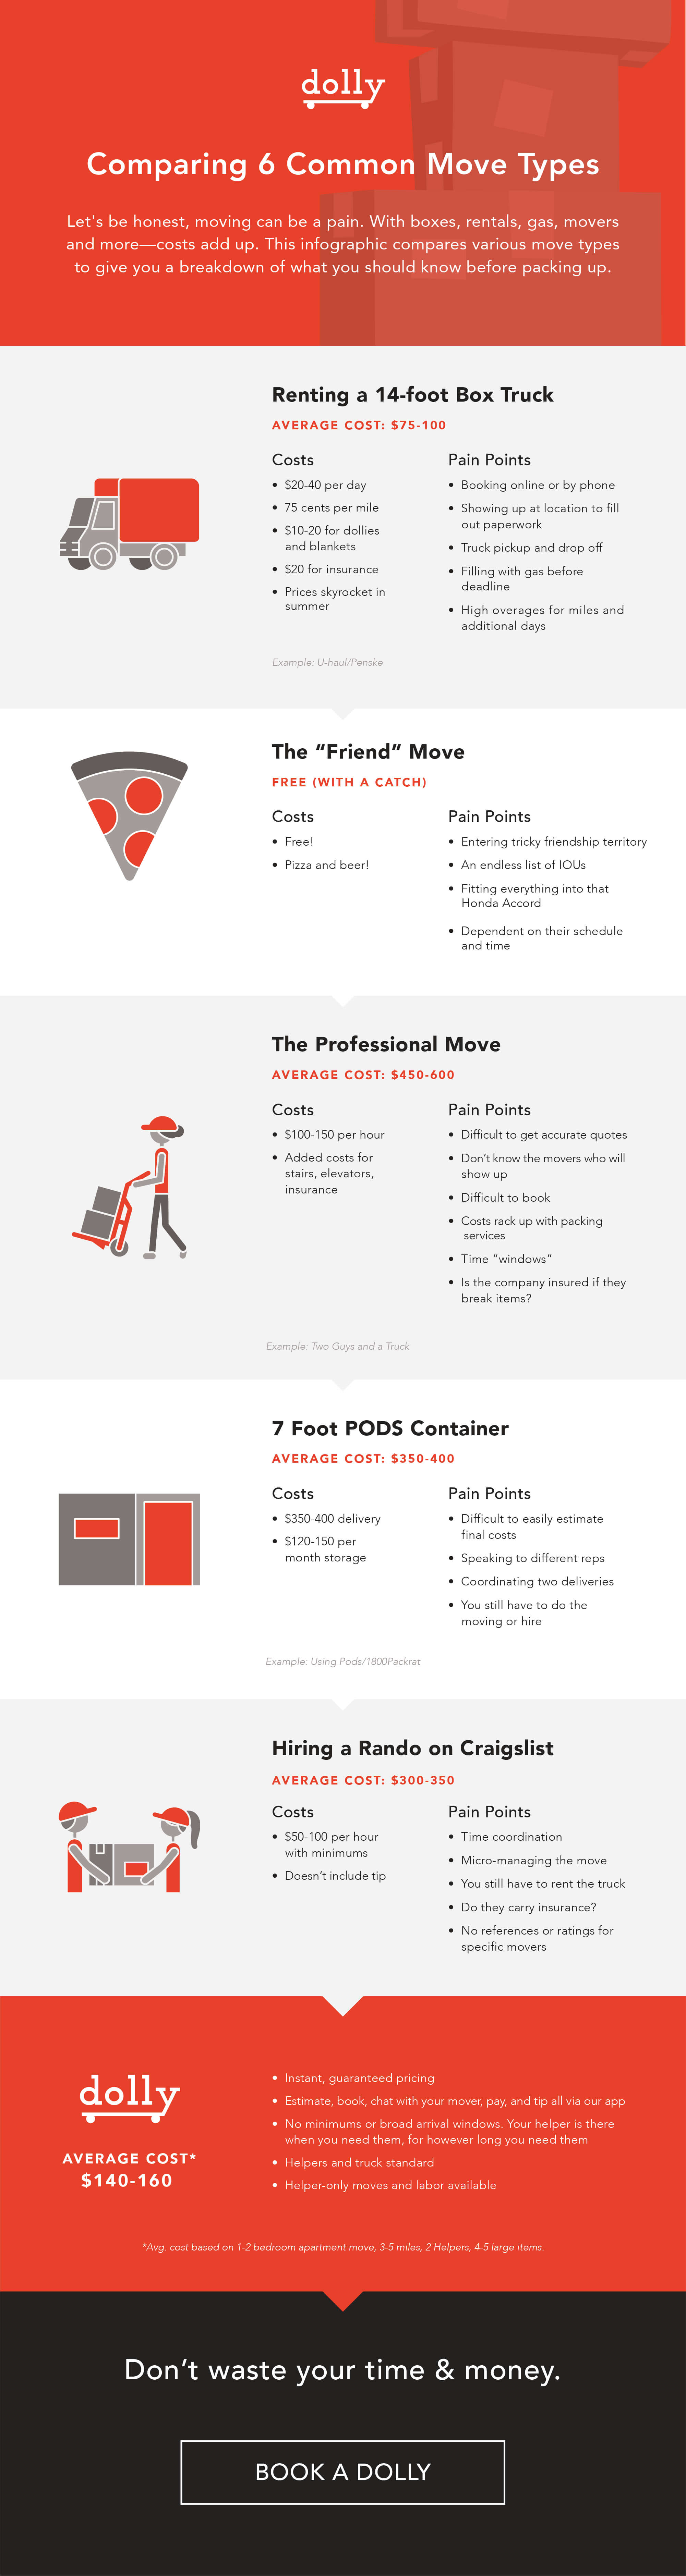 Dolly_Infographic_Comparing6CommonMovingTypes_PRODUCTION_V2.jpg